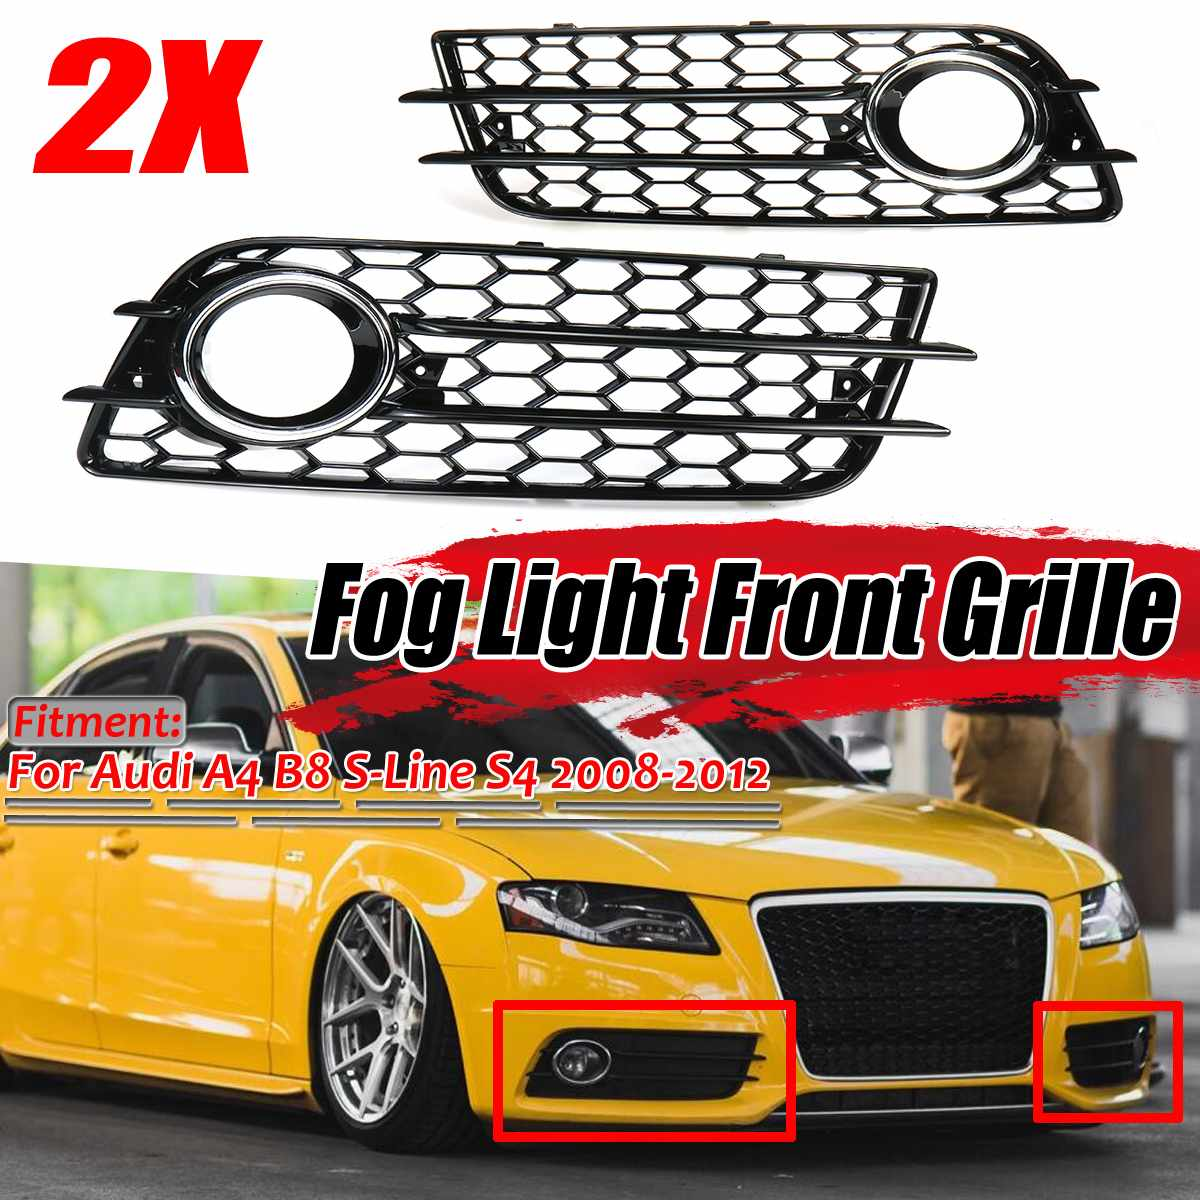 New 2x Car Front Fog Light Grille Cover Honeycomb Fog Lamp Grill For Audi A4 B8 S-Lines S4 Bumper 2008-12 8K0807681C 8K0807682C